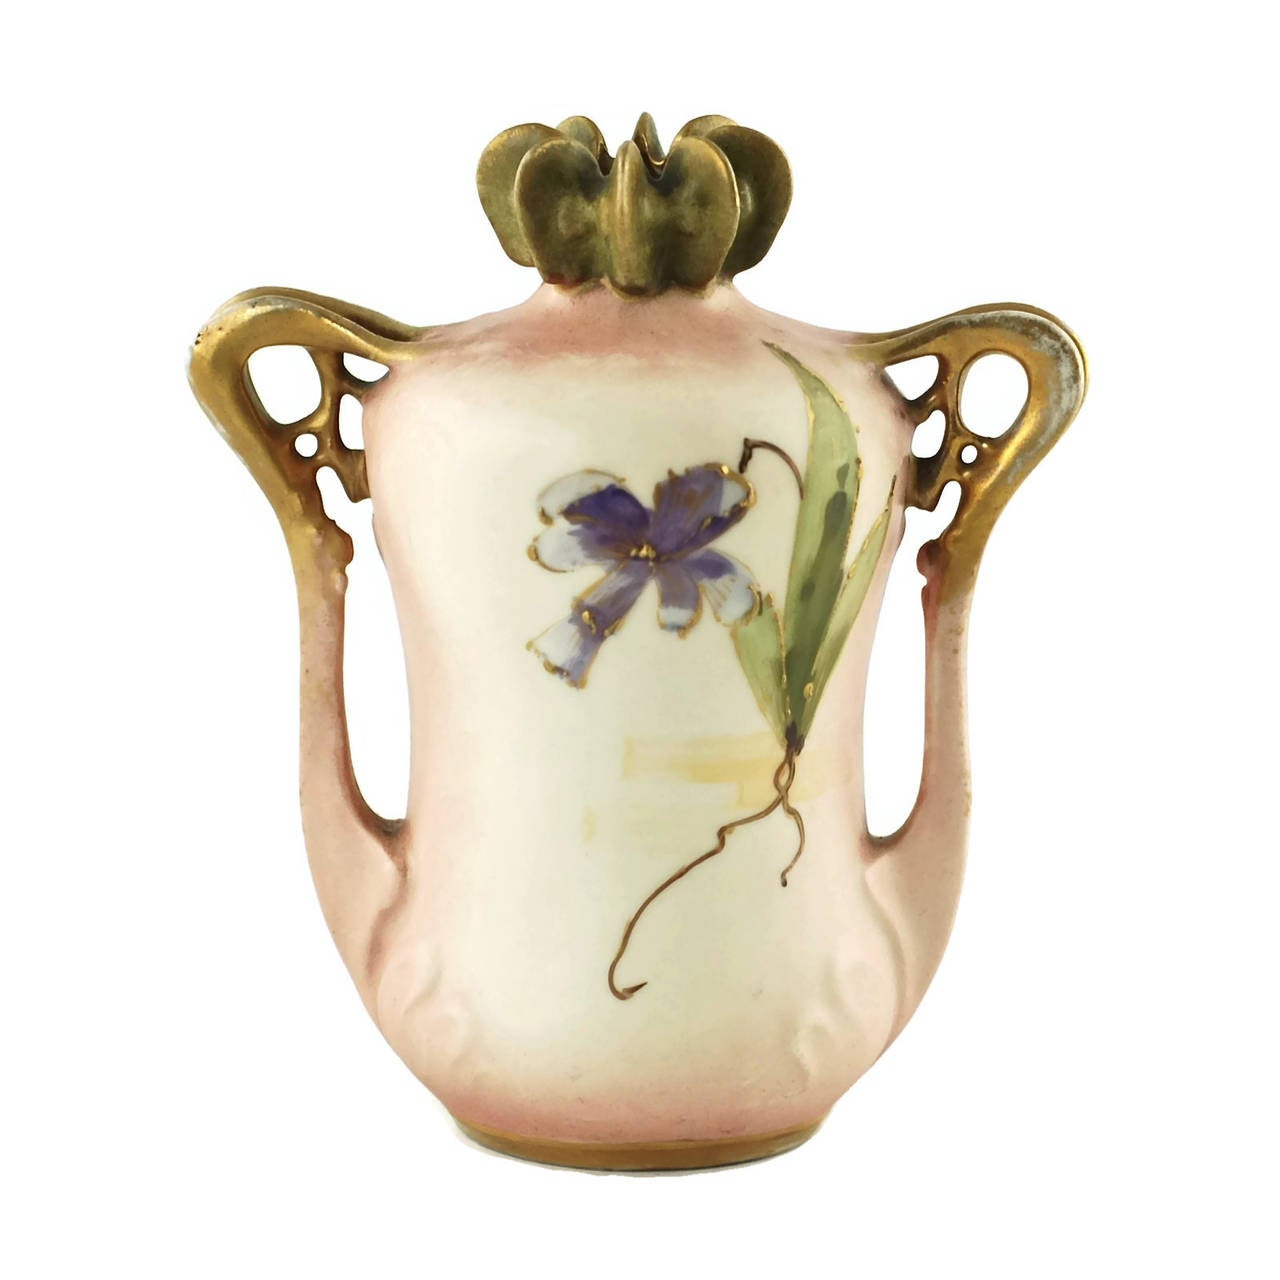 Art Nouveau Paul Dachsel for Riessner, Stellmacher and Kessel Amphora Porcelain Vase For Sale